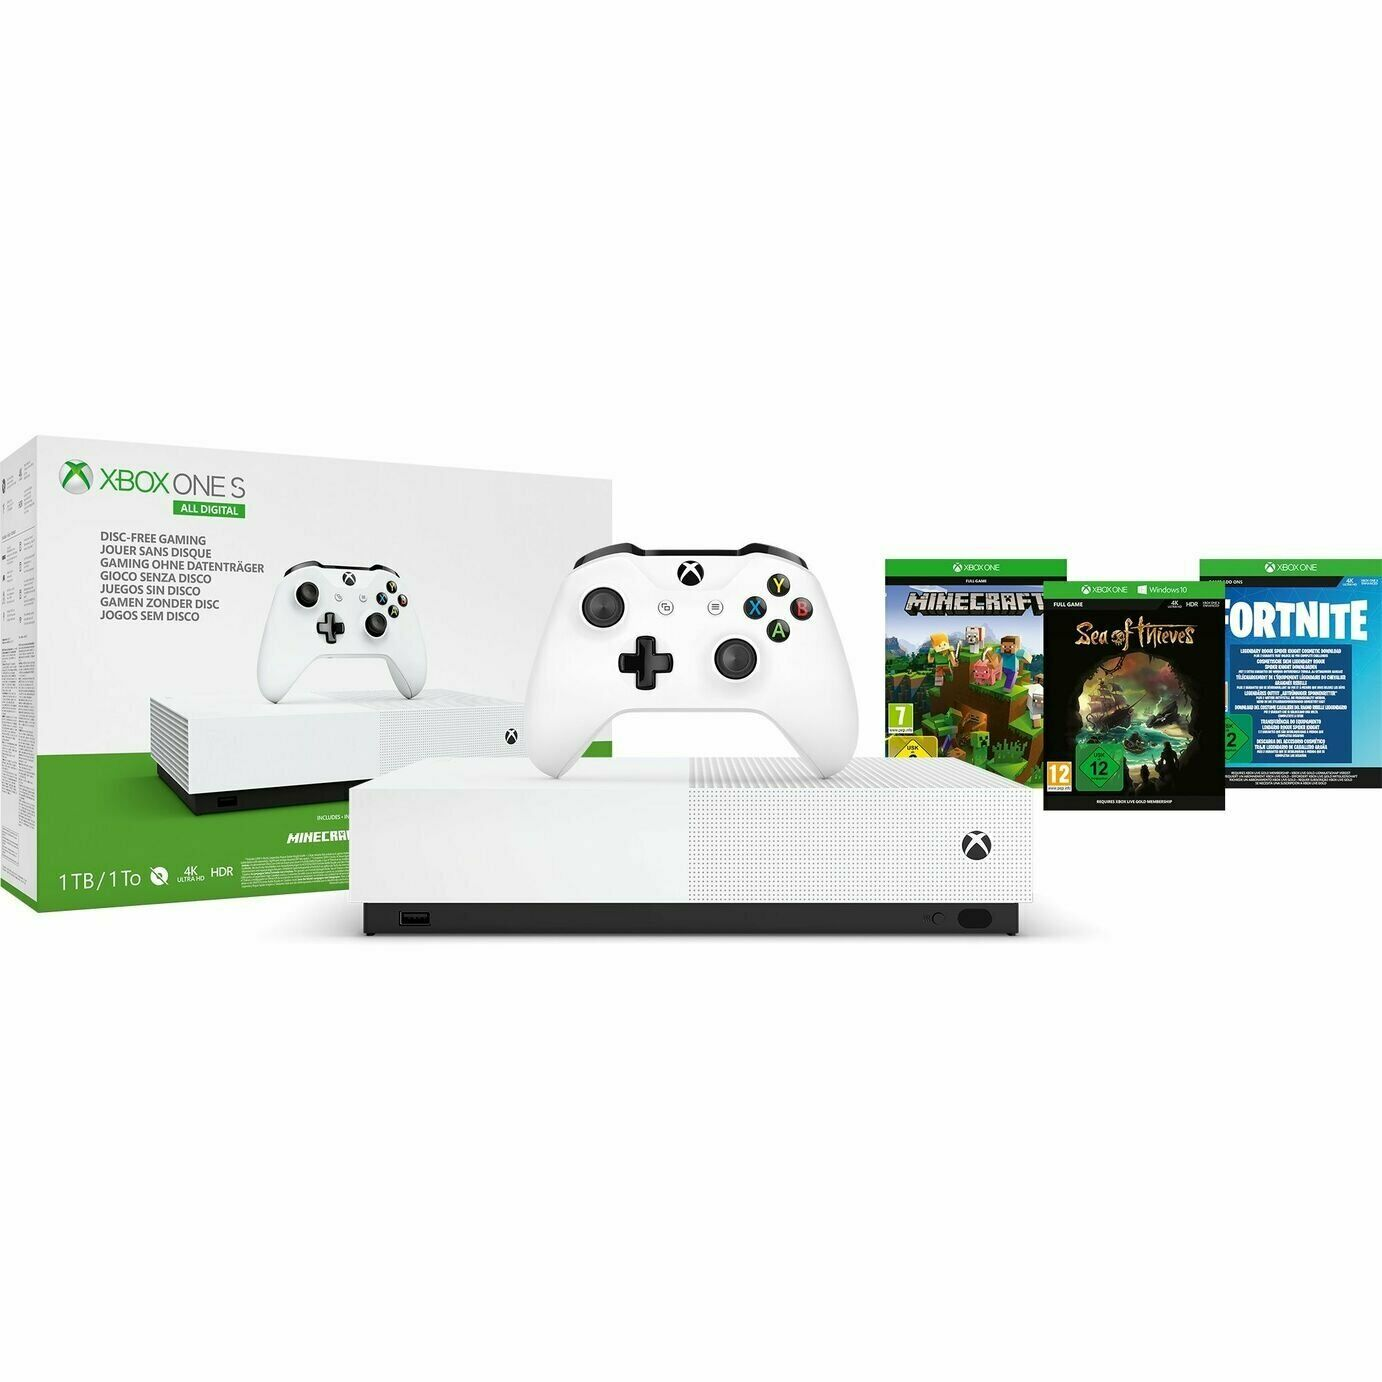 Xbox One S 1TB All Digital Edition V2 Console & Game Bundle